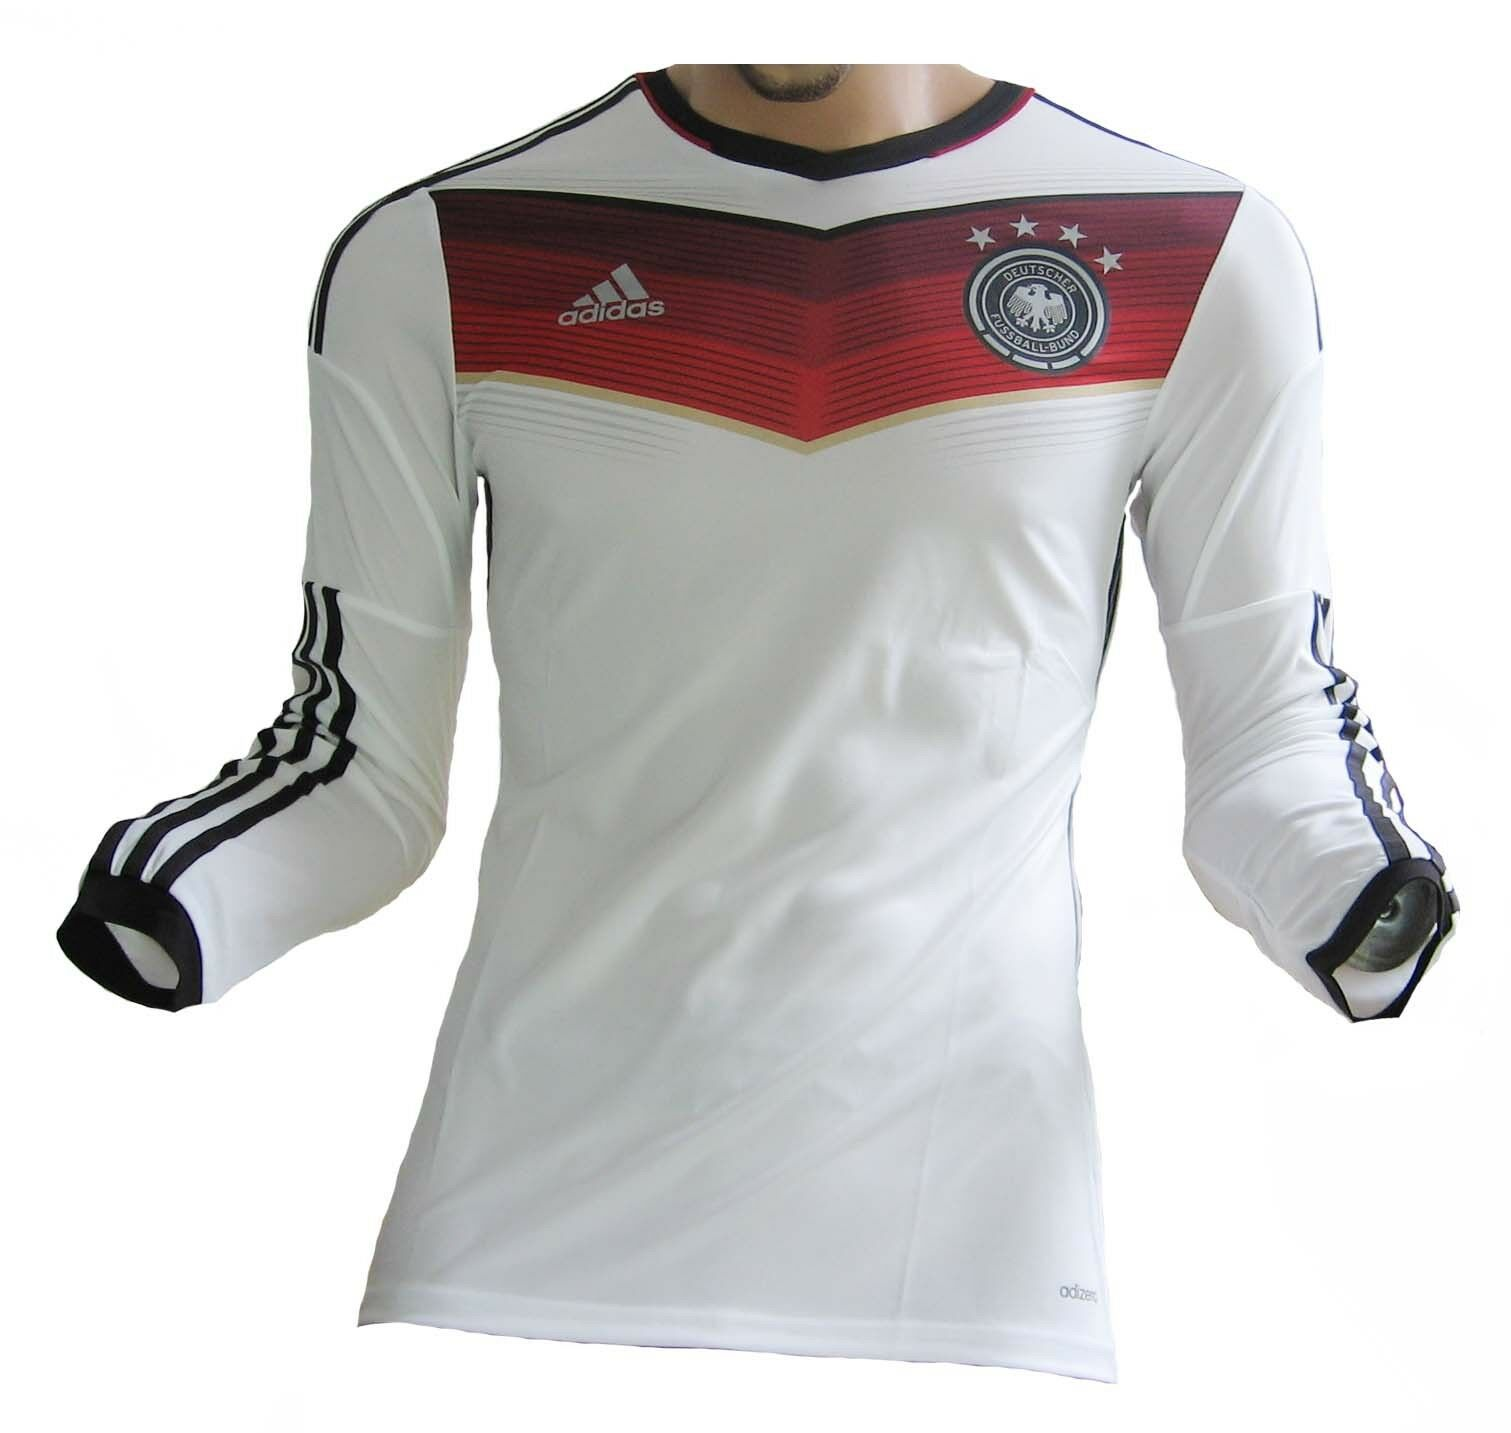 Deutschland Germany Trikot Adidas Player Issue Adizero M (5)  | Verschiedene aktuelle Designs